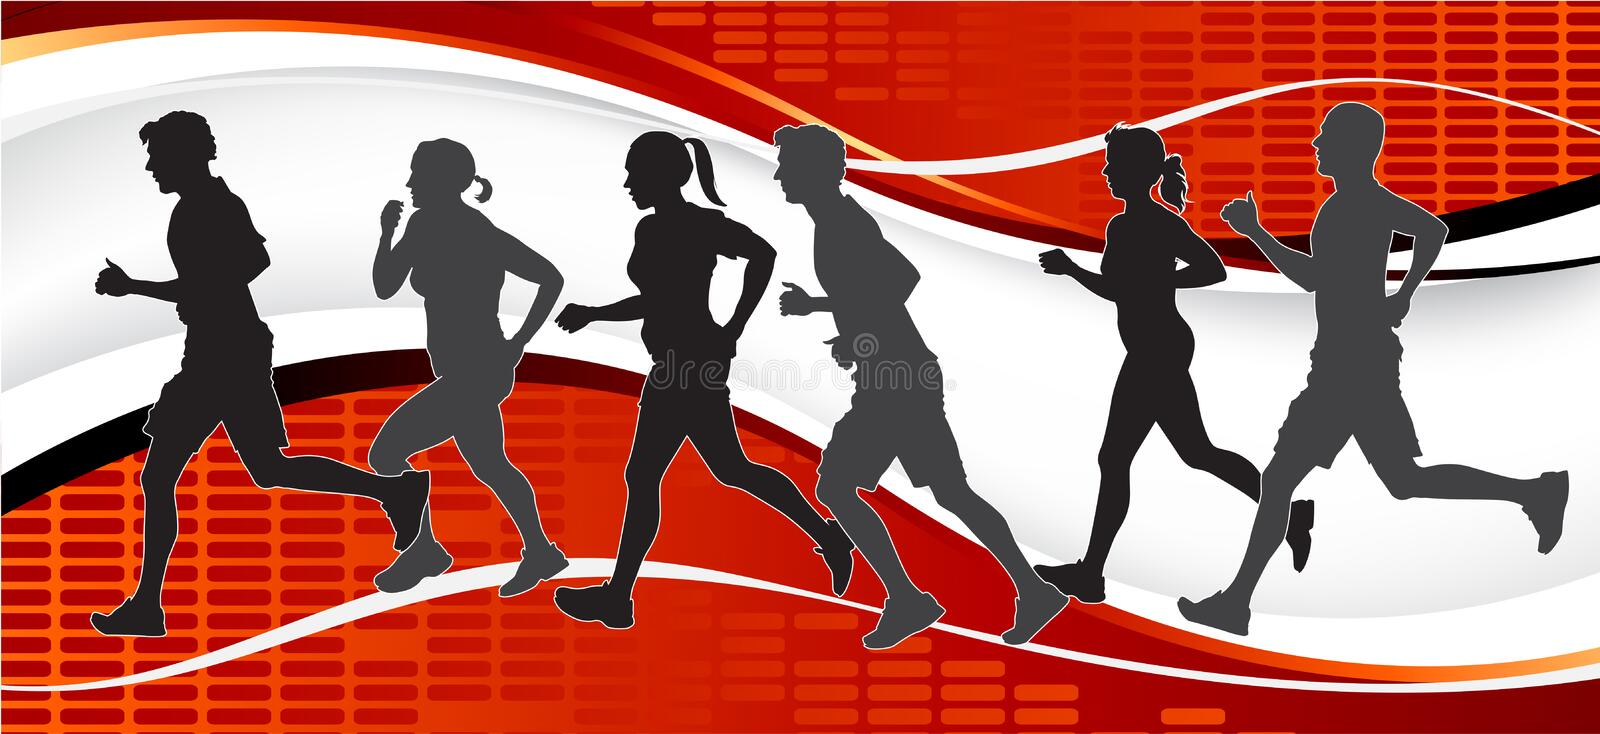 Group of Marathon Runners on abstract background. stock illustration